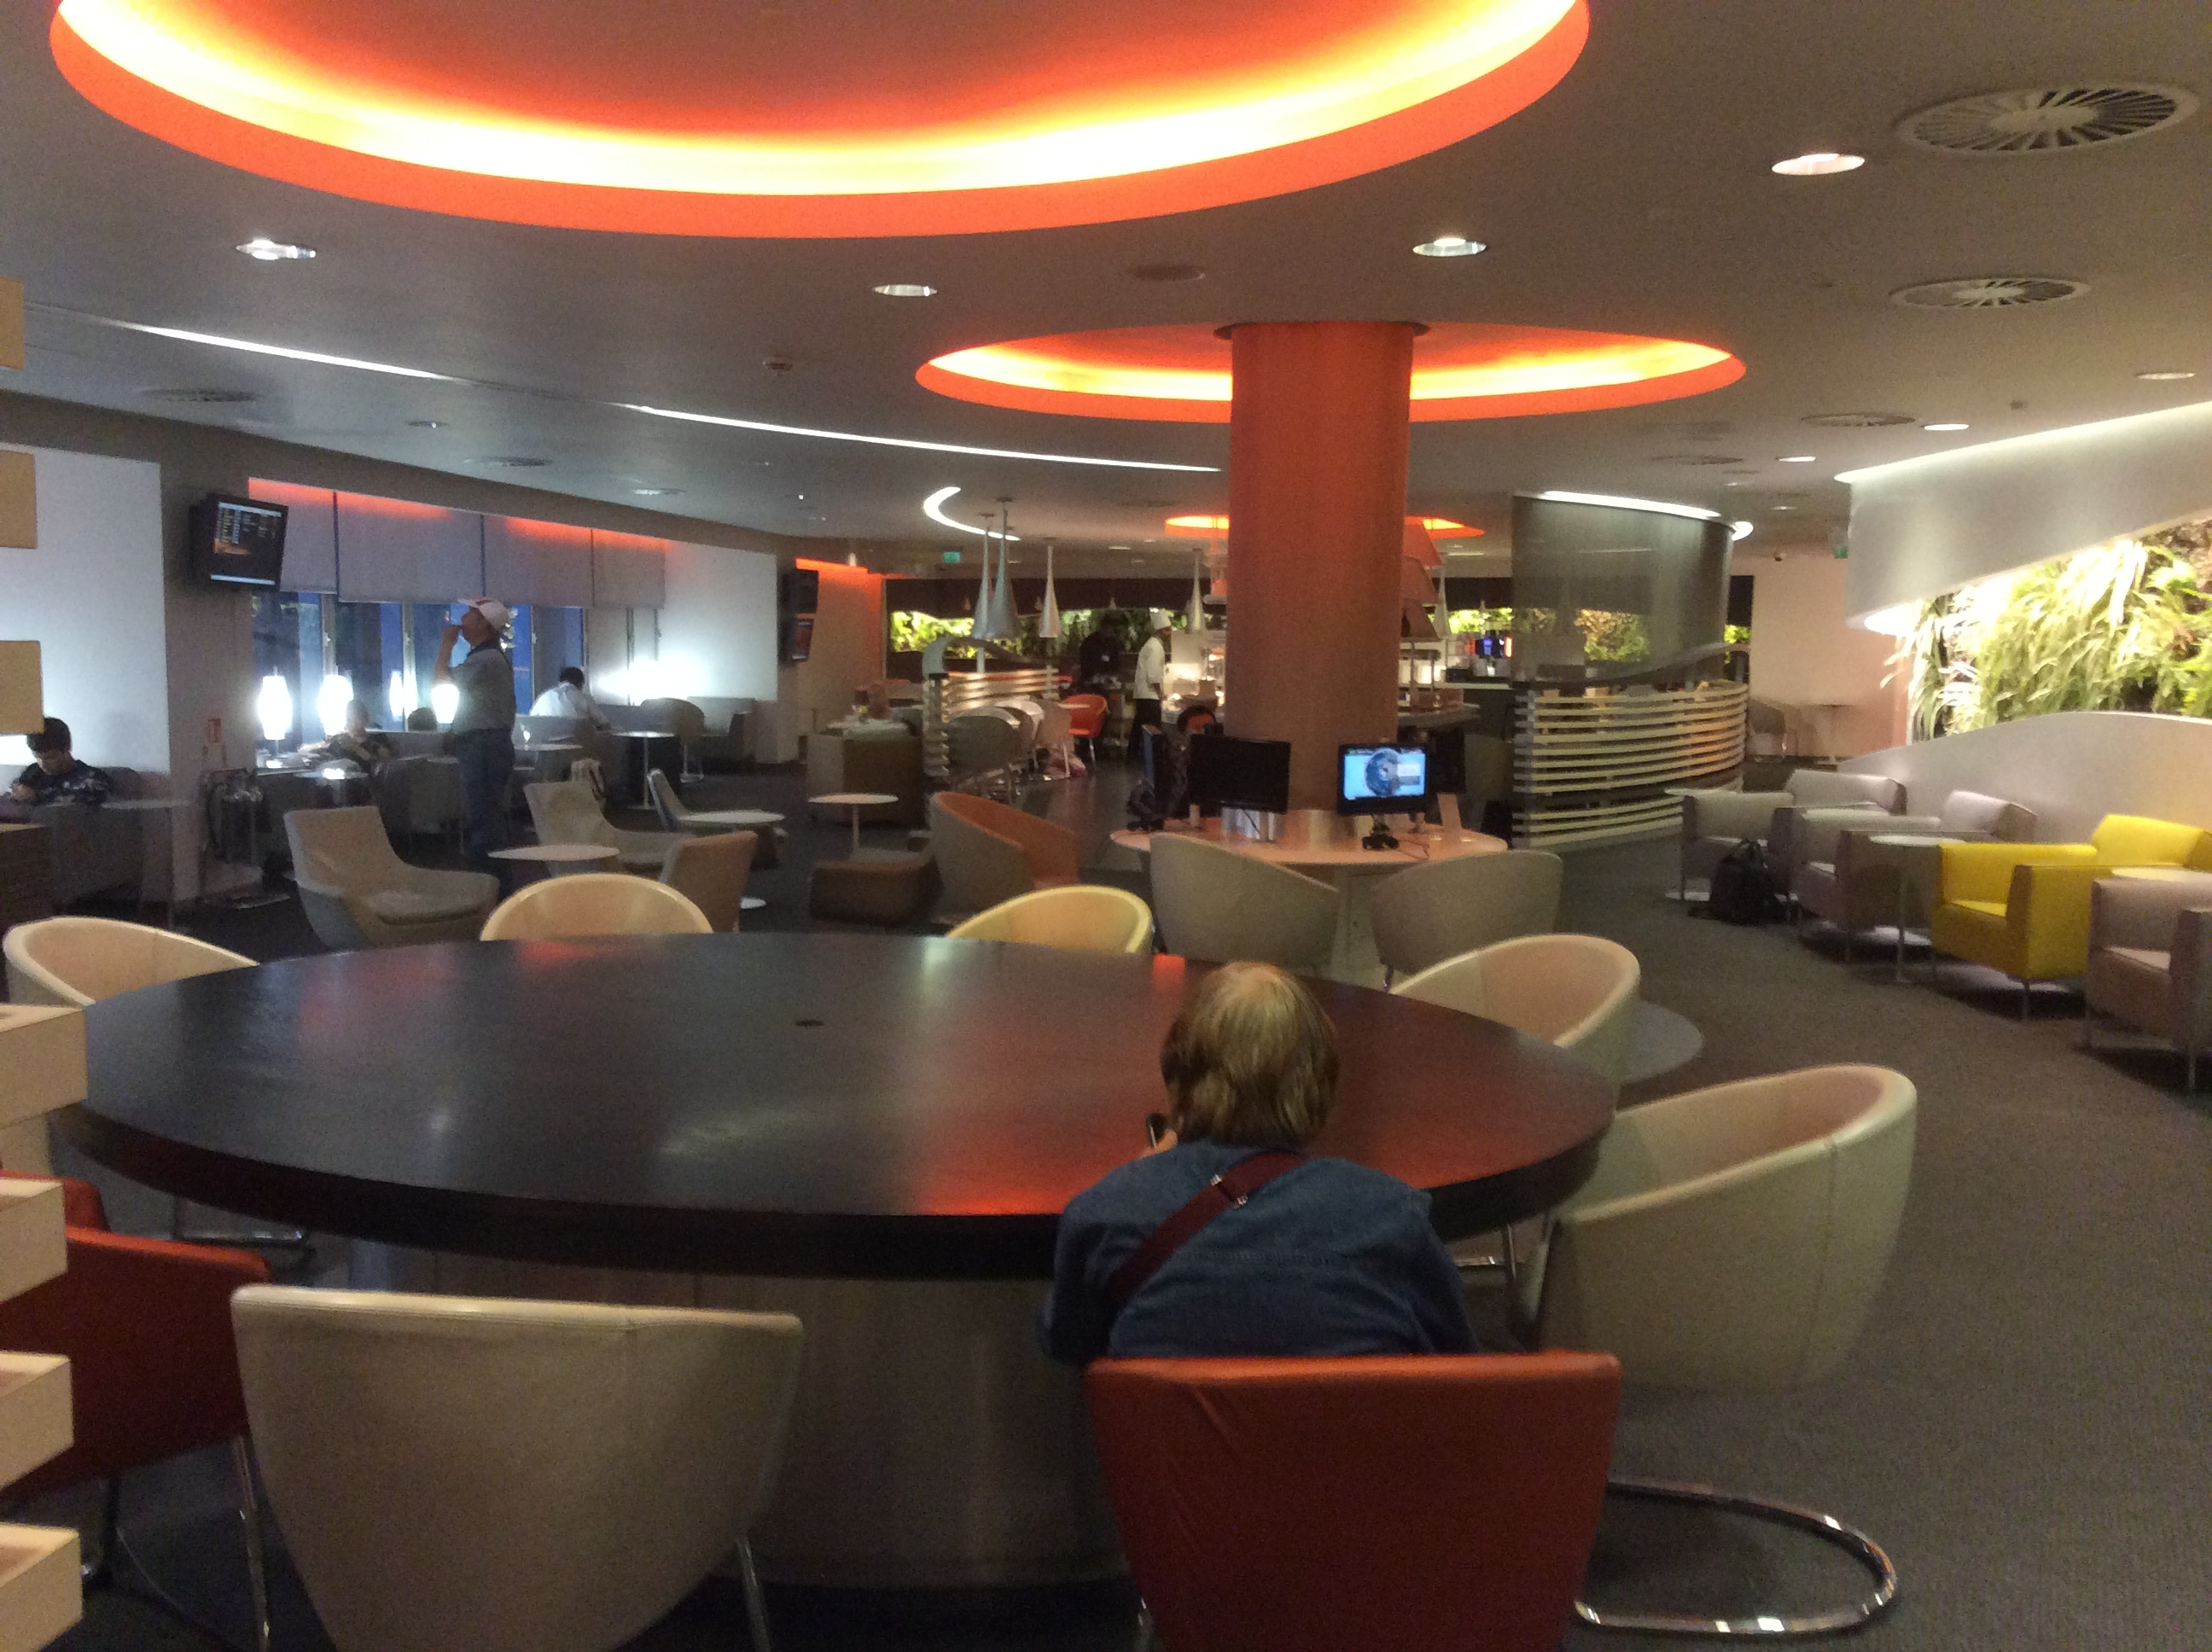 The best airport lounges for getting productive work done before a flight